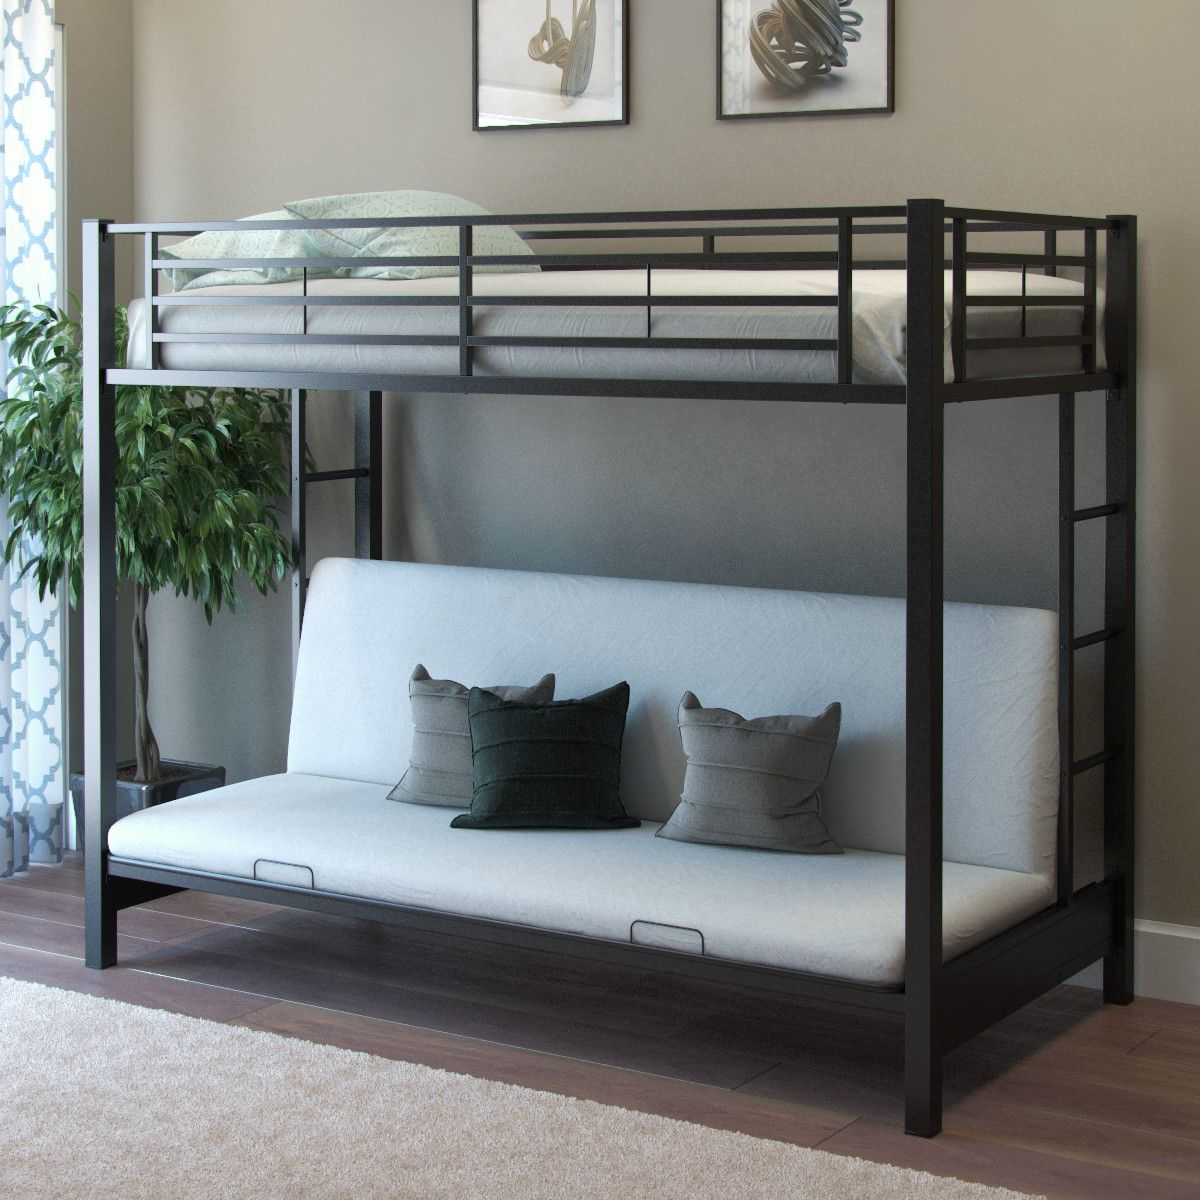 25 best ideas about twin size futon on pinterest small futon ikea futon and twin futon. Black Bedroom Furniture Sets. Home Design Ideas